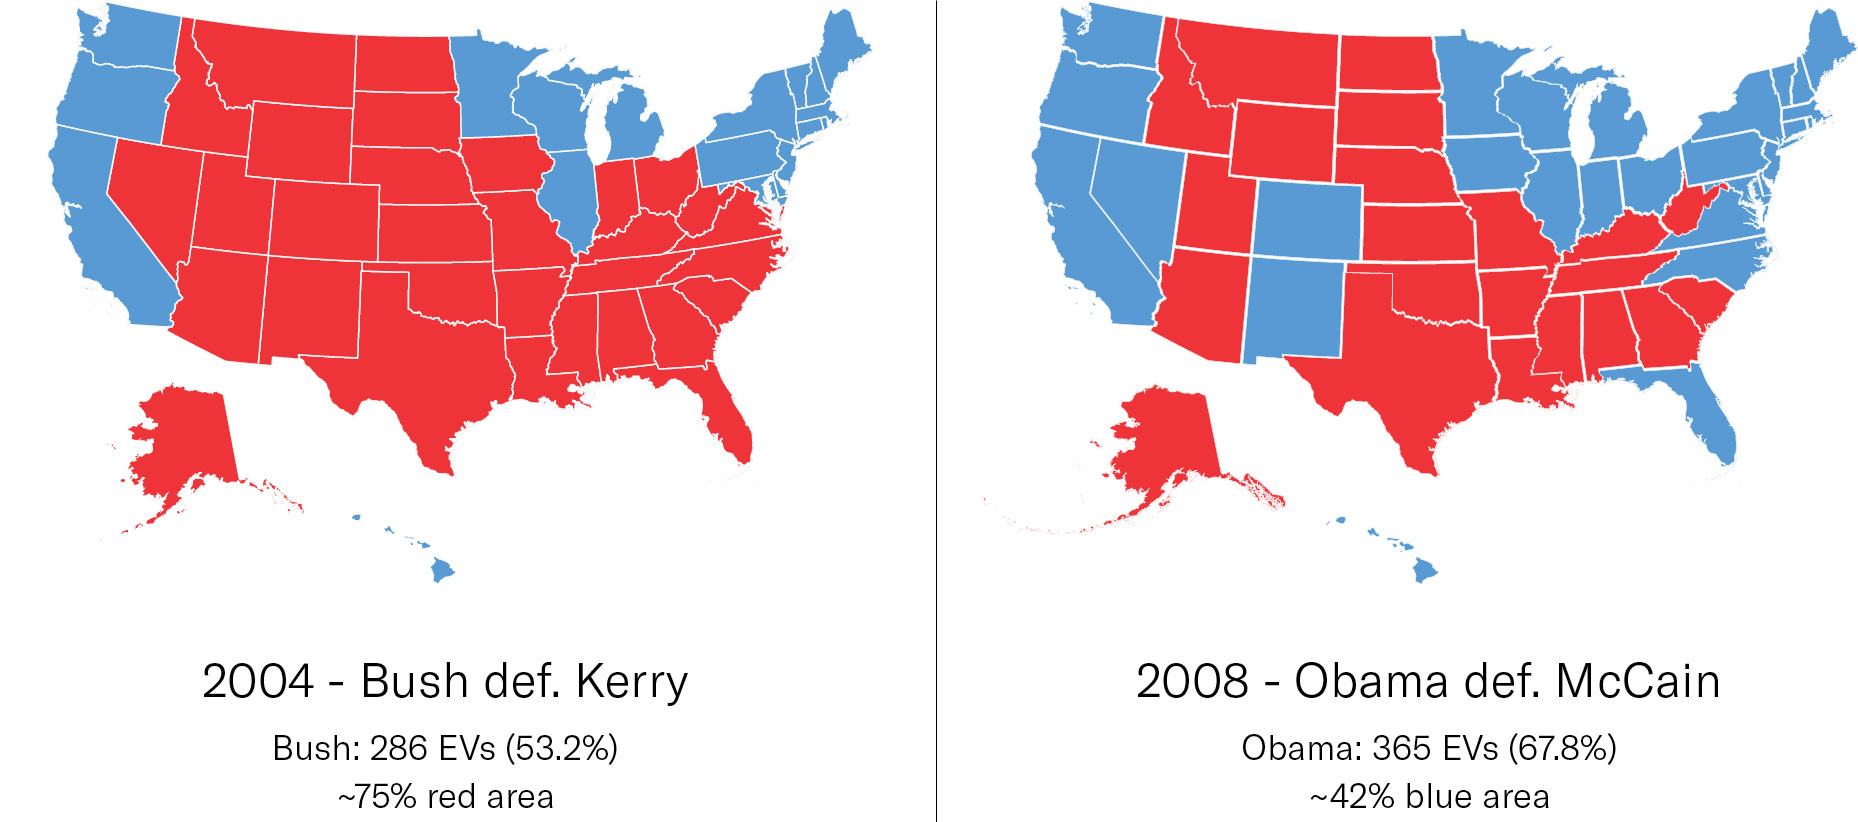 Despite winning the electoral college (and popular vote) by a much wider margin, Obama's 2008 blue area is about half the size of Bush's 2004 red area.